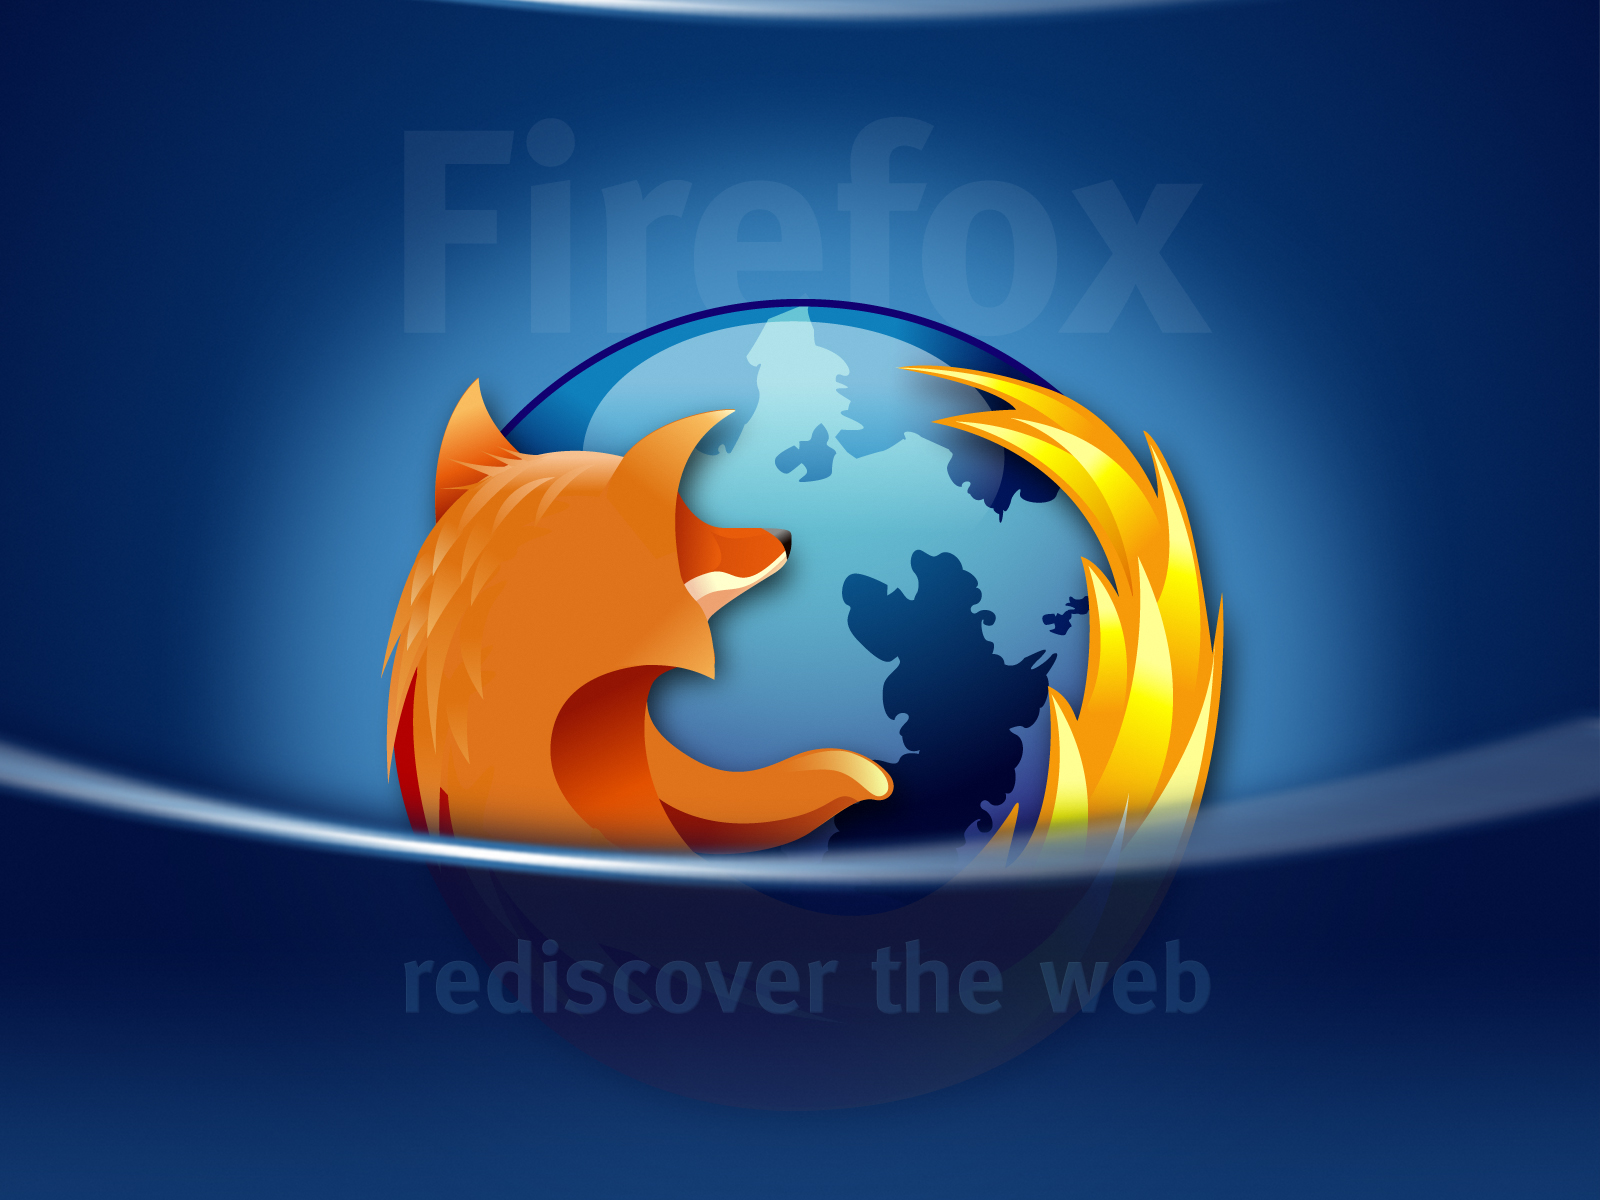 Rediscover-The-Web